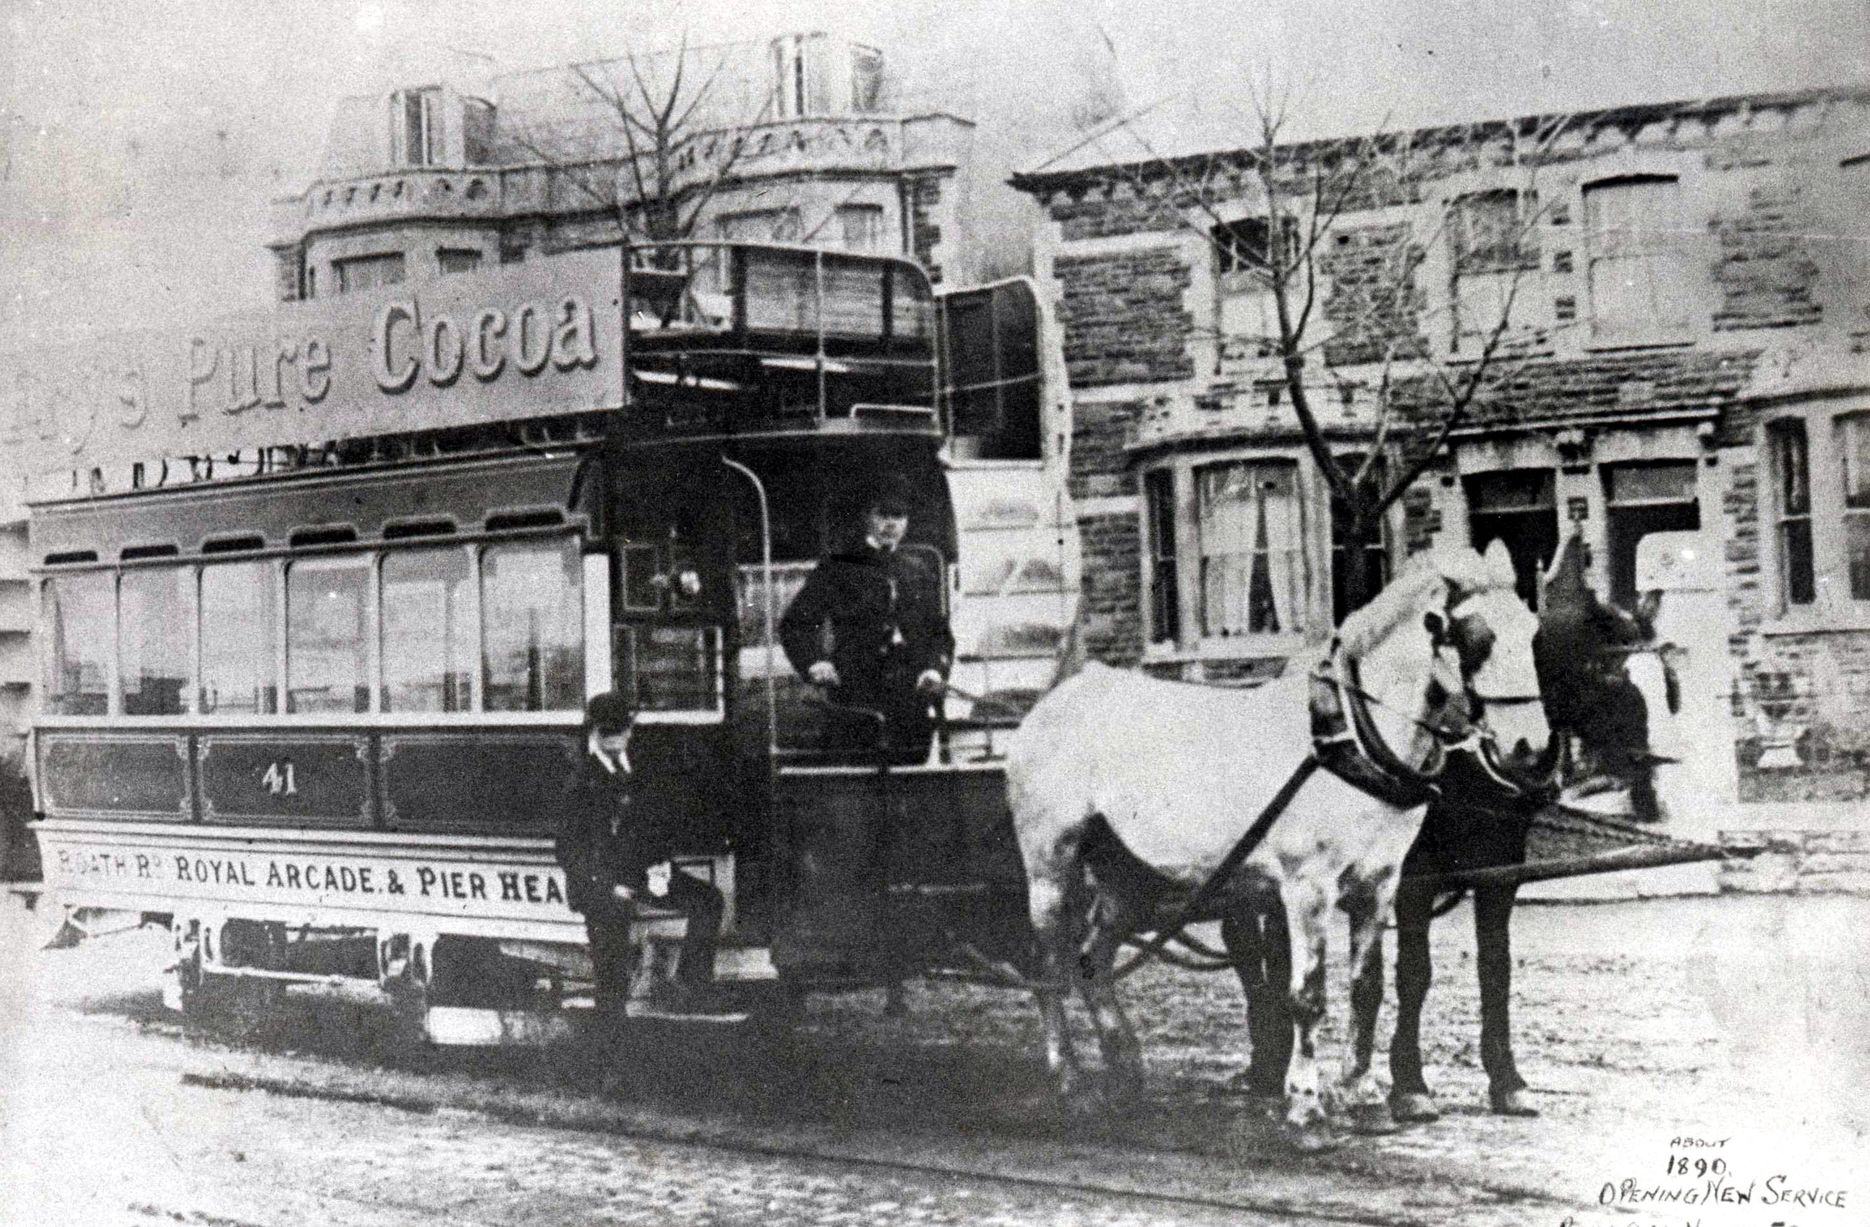 Horse tram 41 on the Royal Oak to Pier Head tram route, circa 1890.